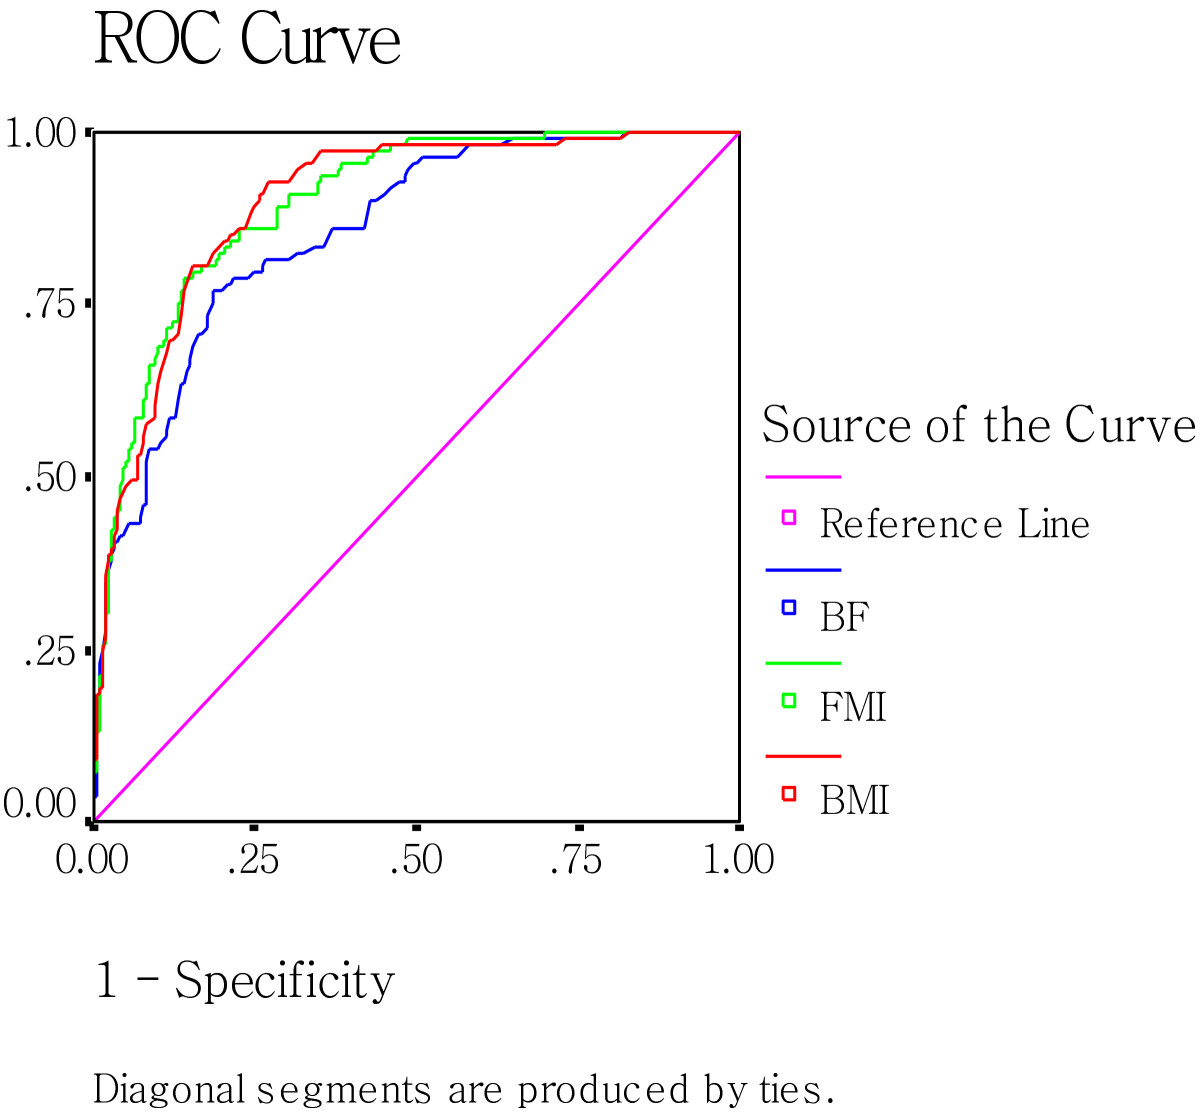 https://static-content.springer.com/image/art%3A10.1186%2F1471-2458-13-629/MediaObjects/12889_2013_Article_5527_Fig3_HTML.jpg